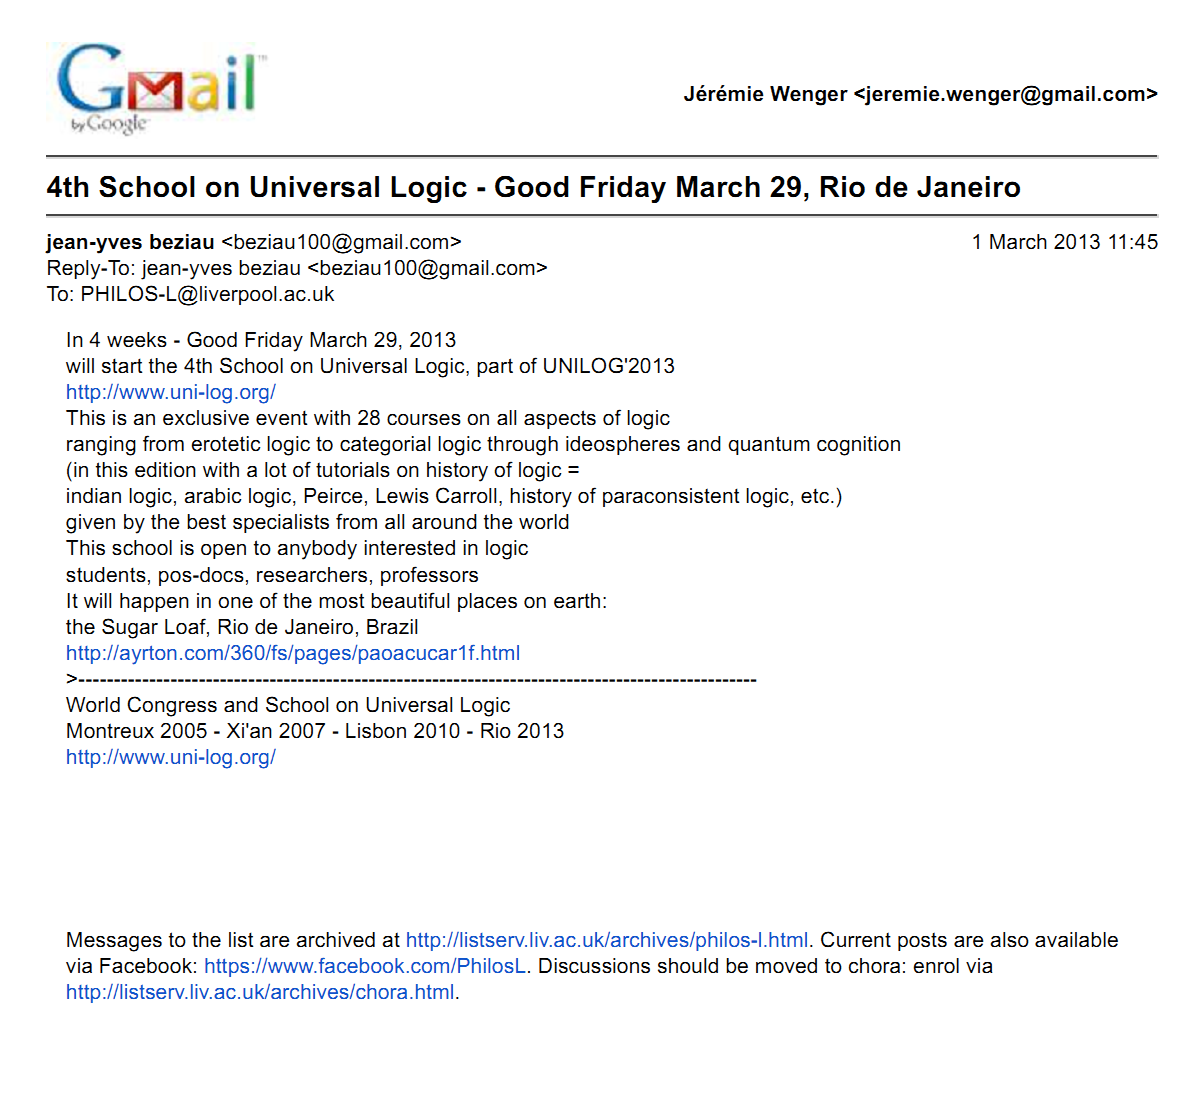 Gmail - 4th School on Universal Logic - Good Friday March 29, Rio de Janeiro